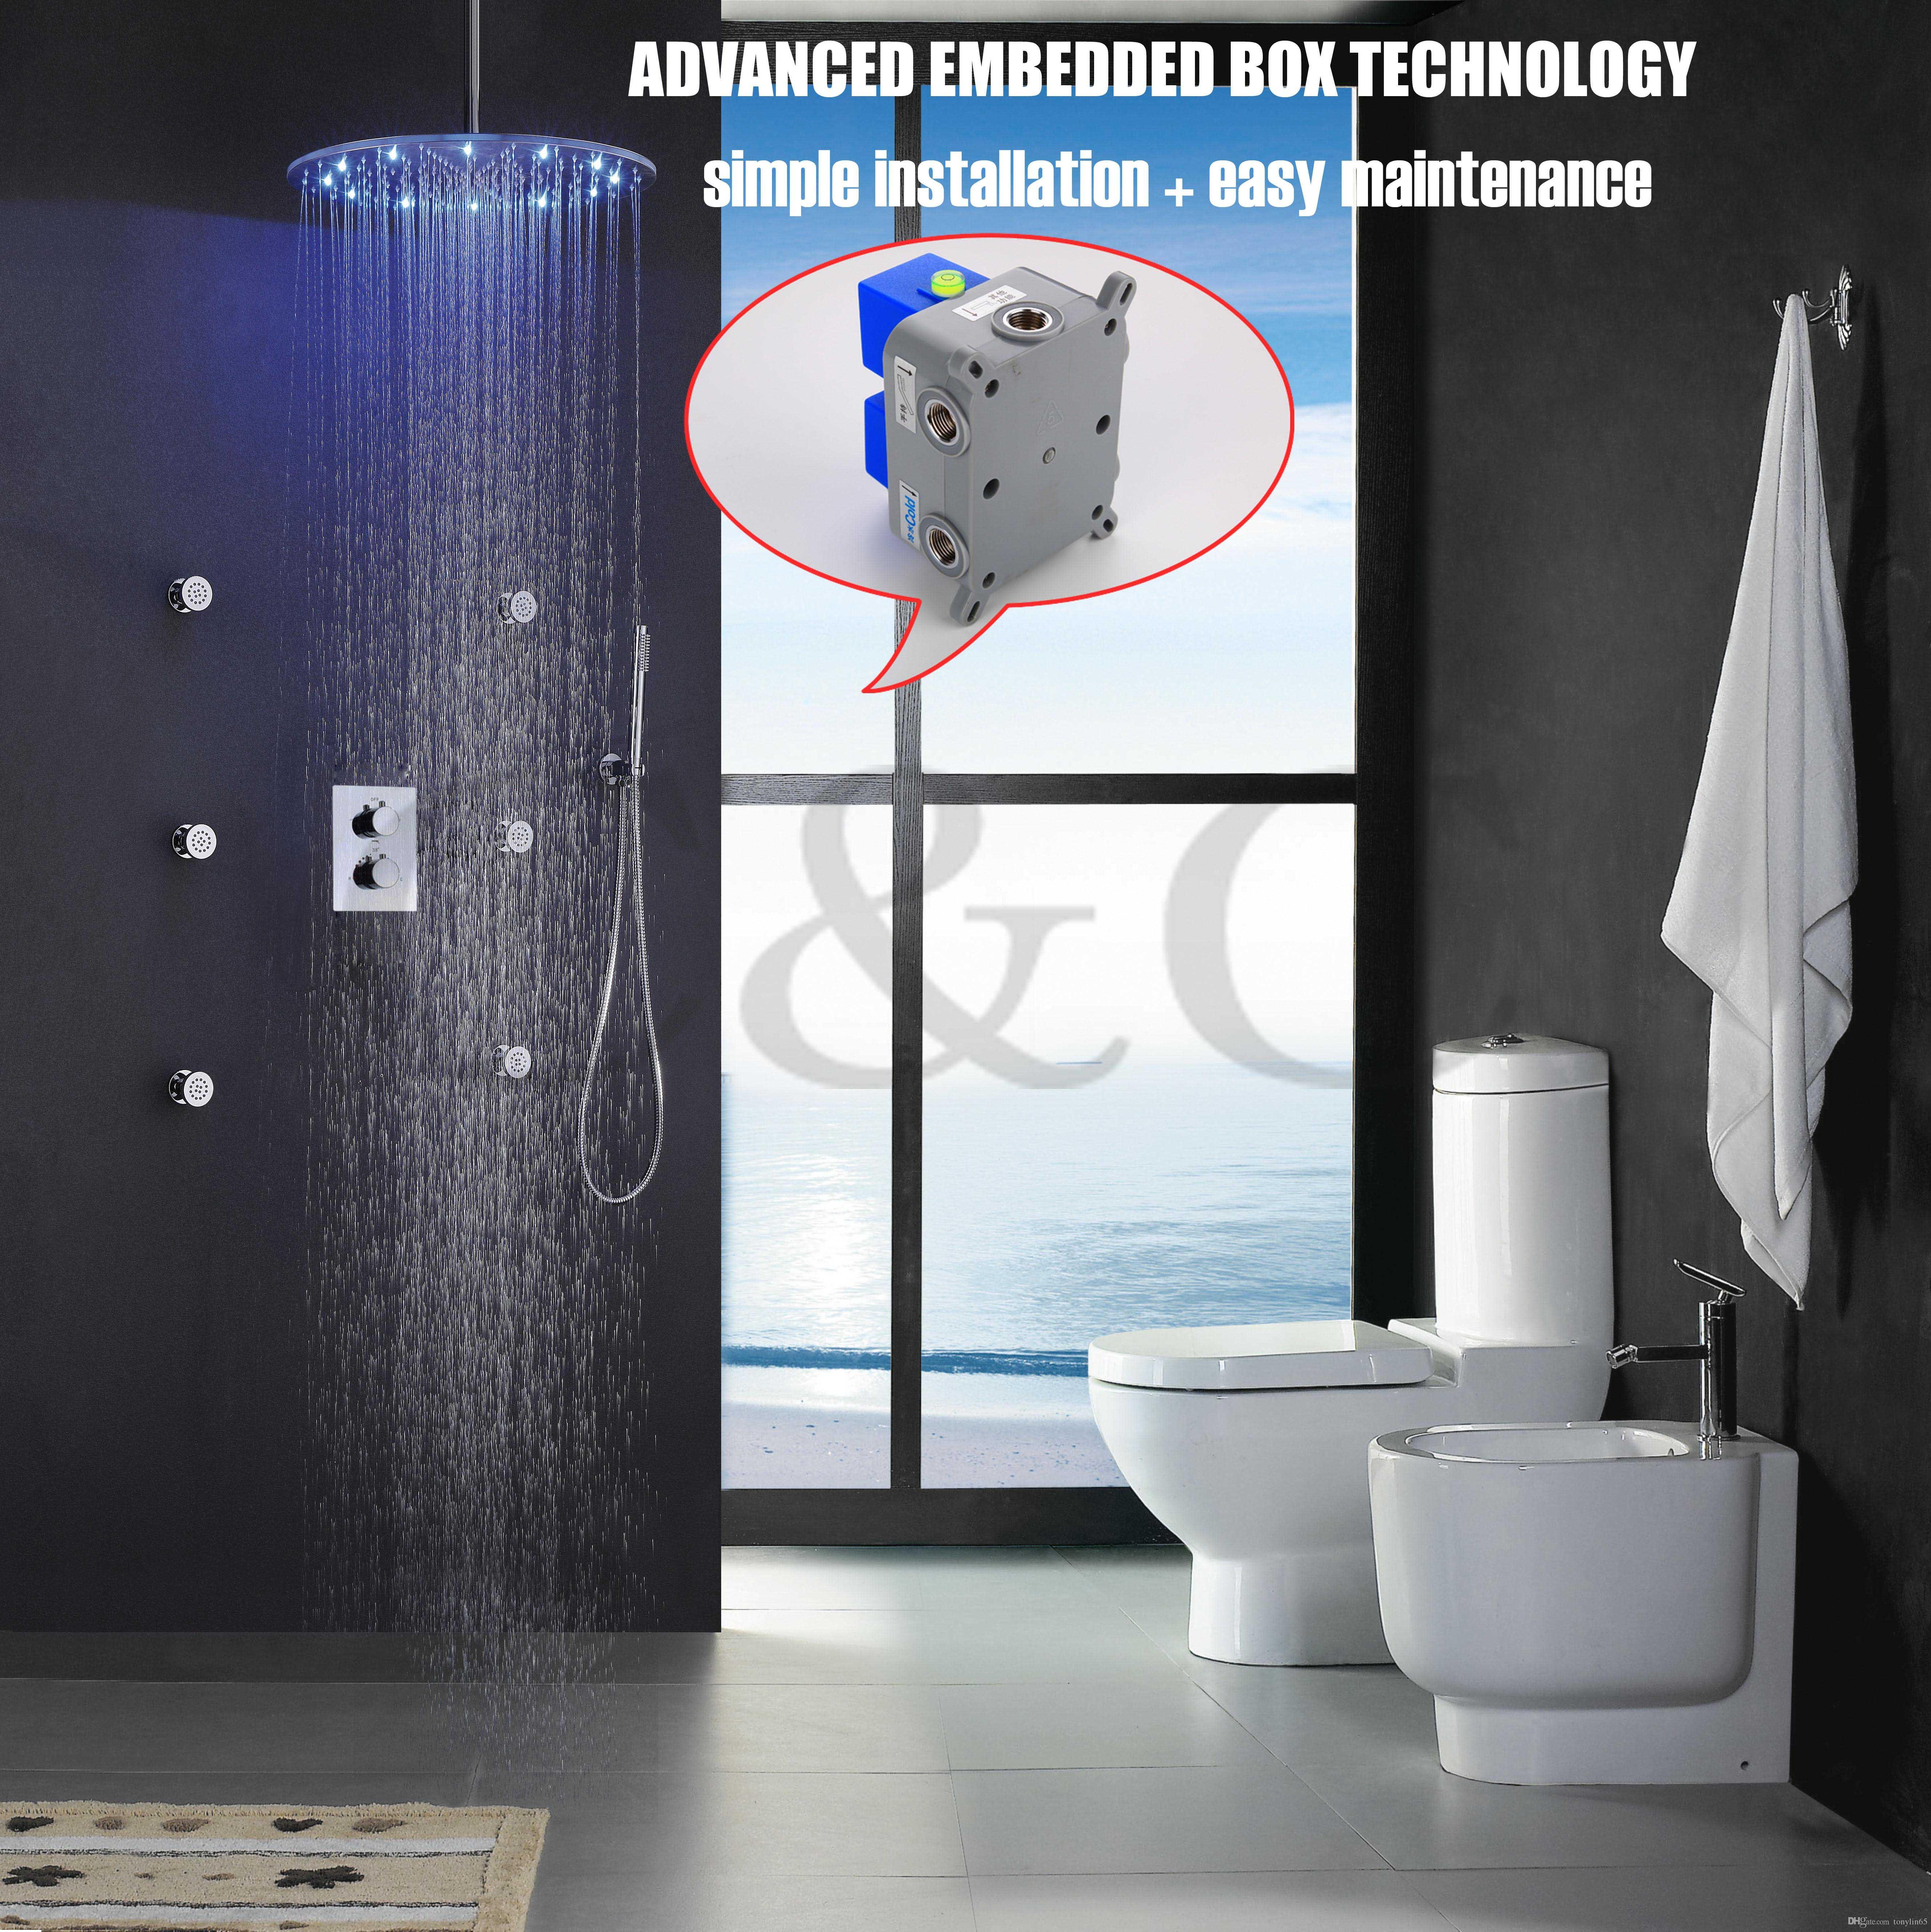 Thermostat bathroom shower faucet set 20 inch led rainfall round shower head with embedded box 002t 20r 3y bath shower faucet shower faucet bath faucet